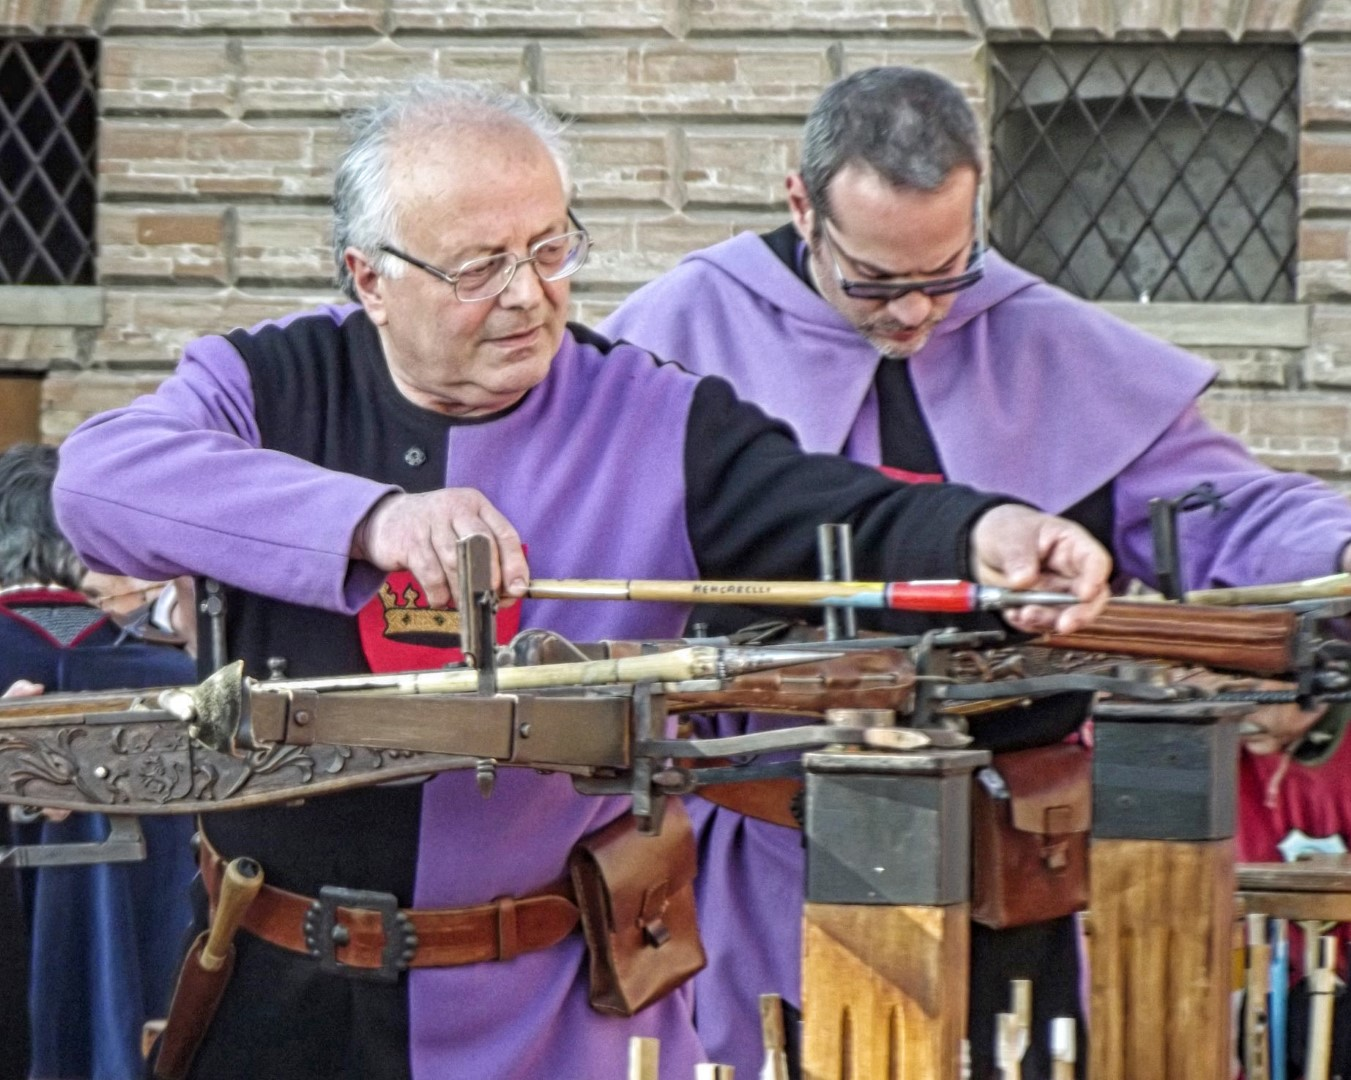 Men with crossbows